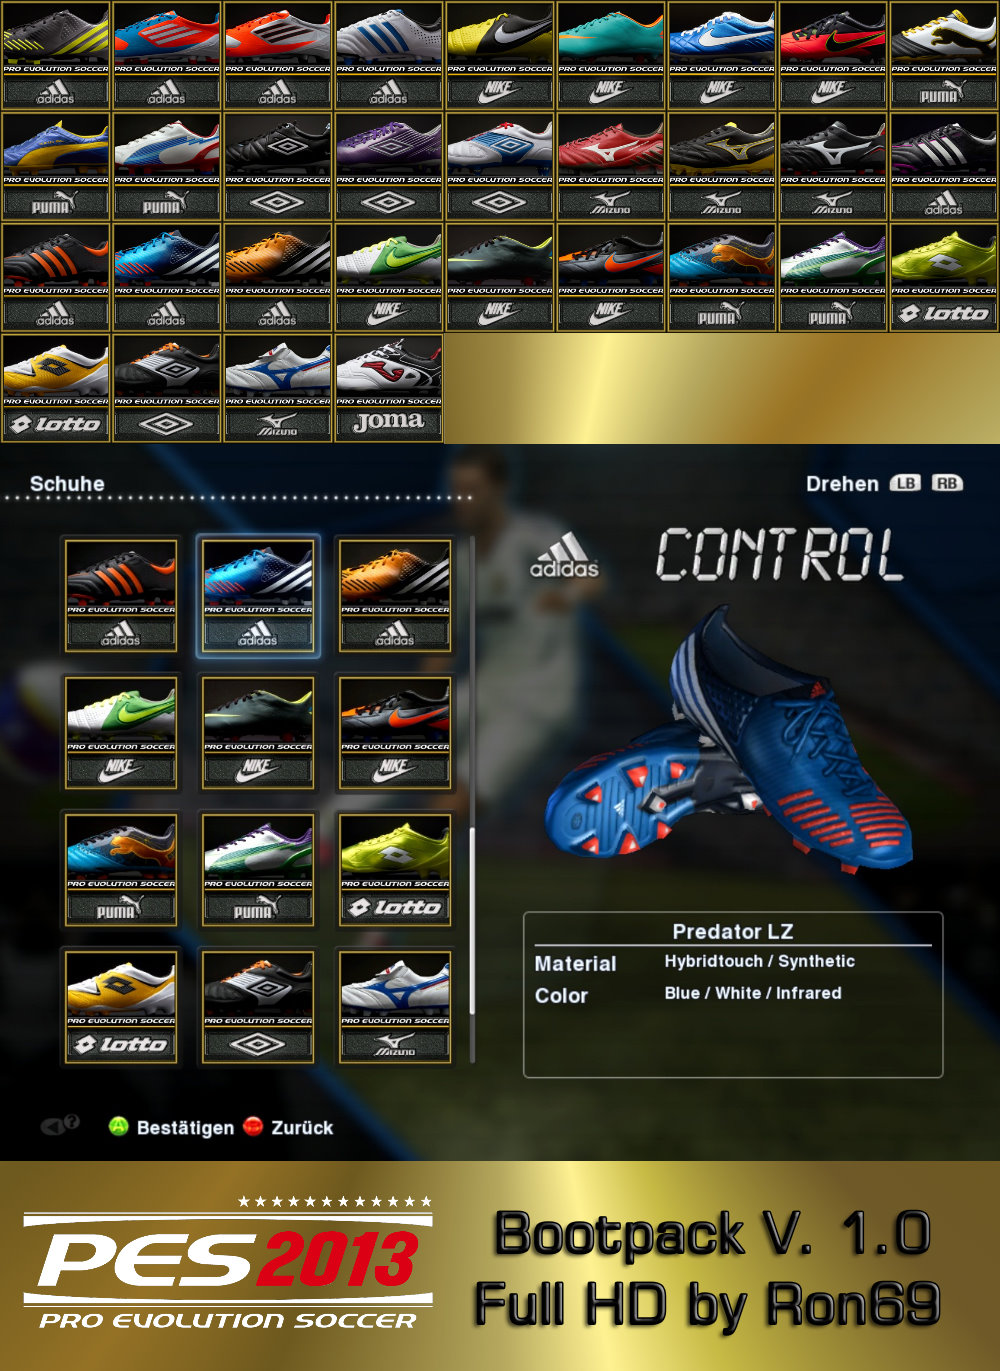 PES 2013 Bootpack 1.0 by Ron69